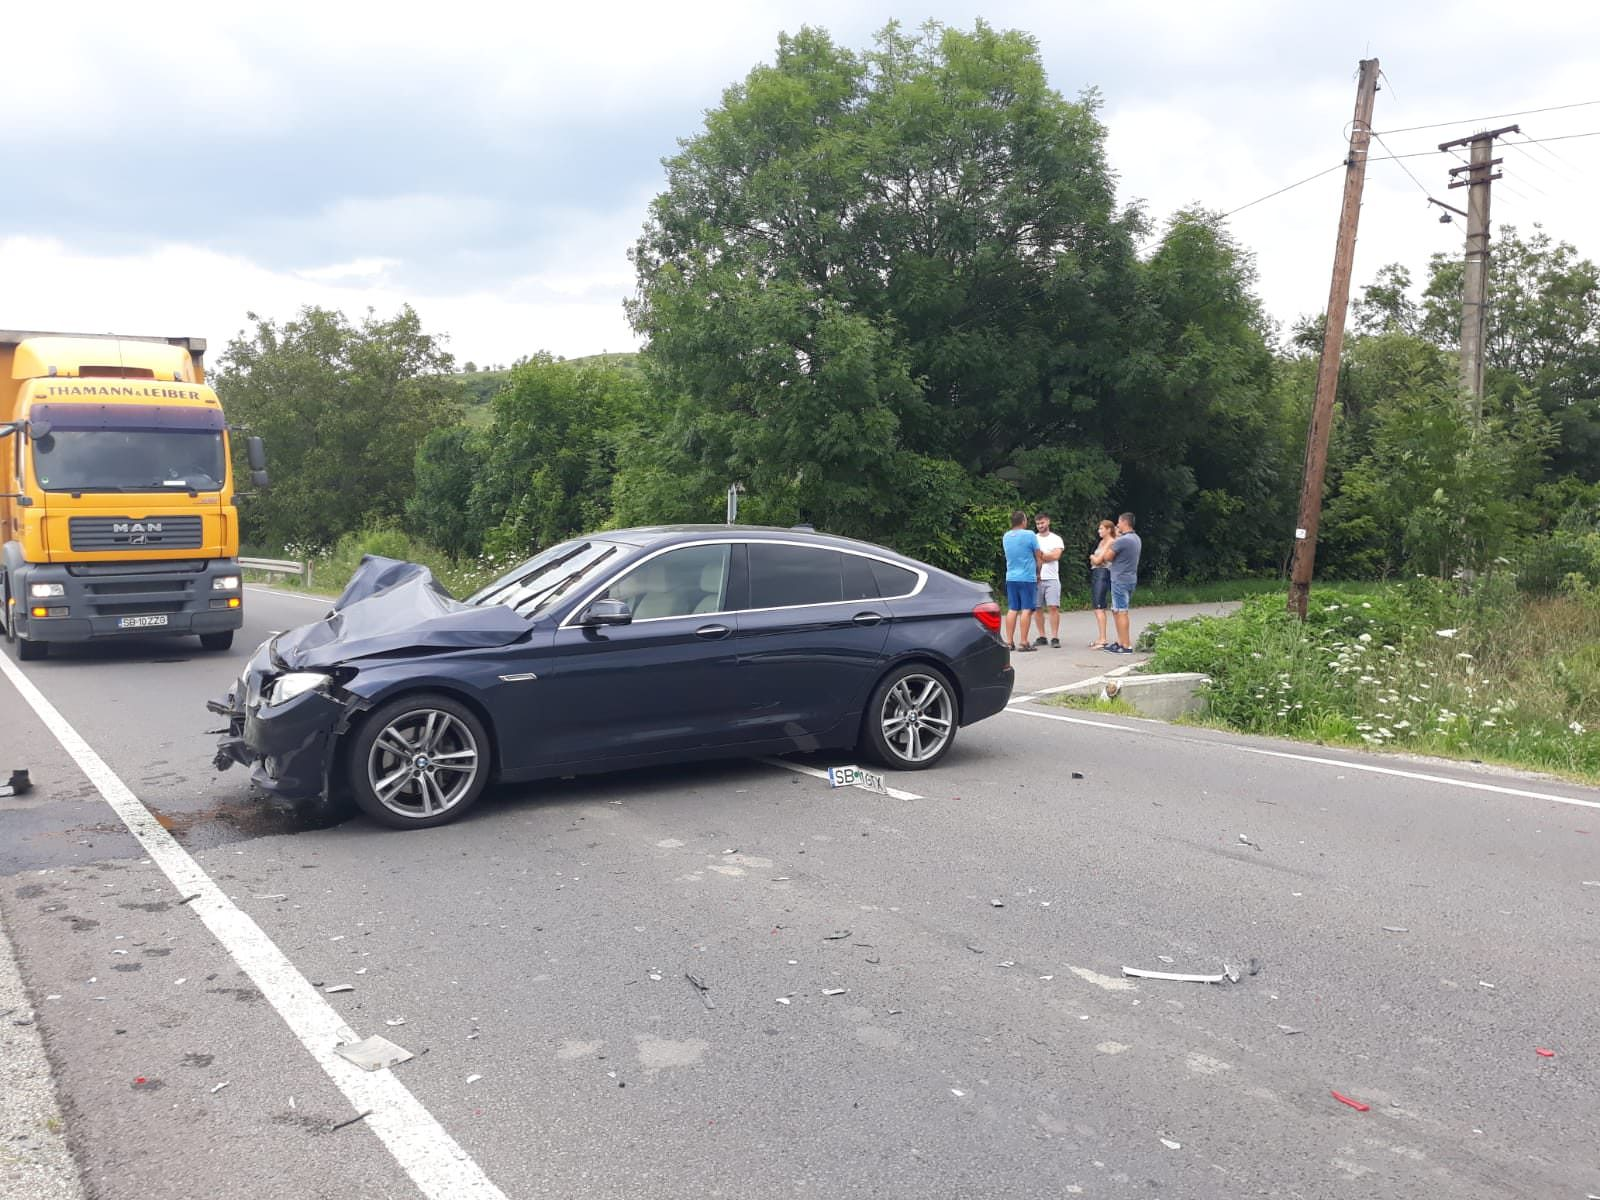 accident dn14 3